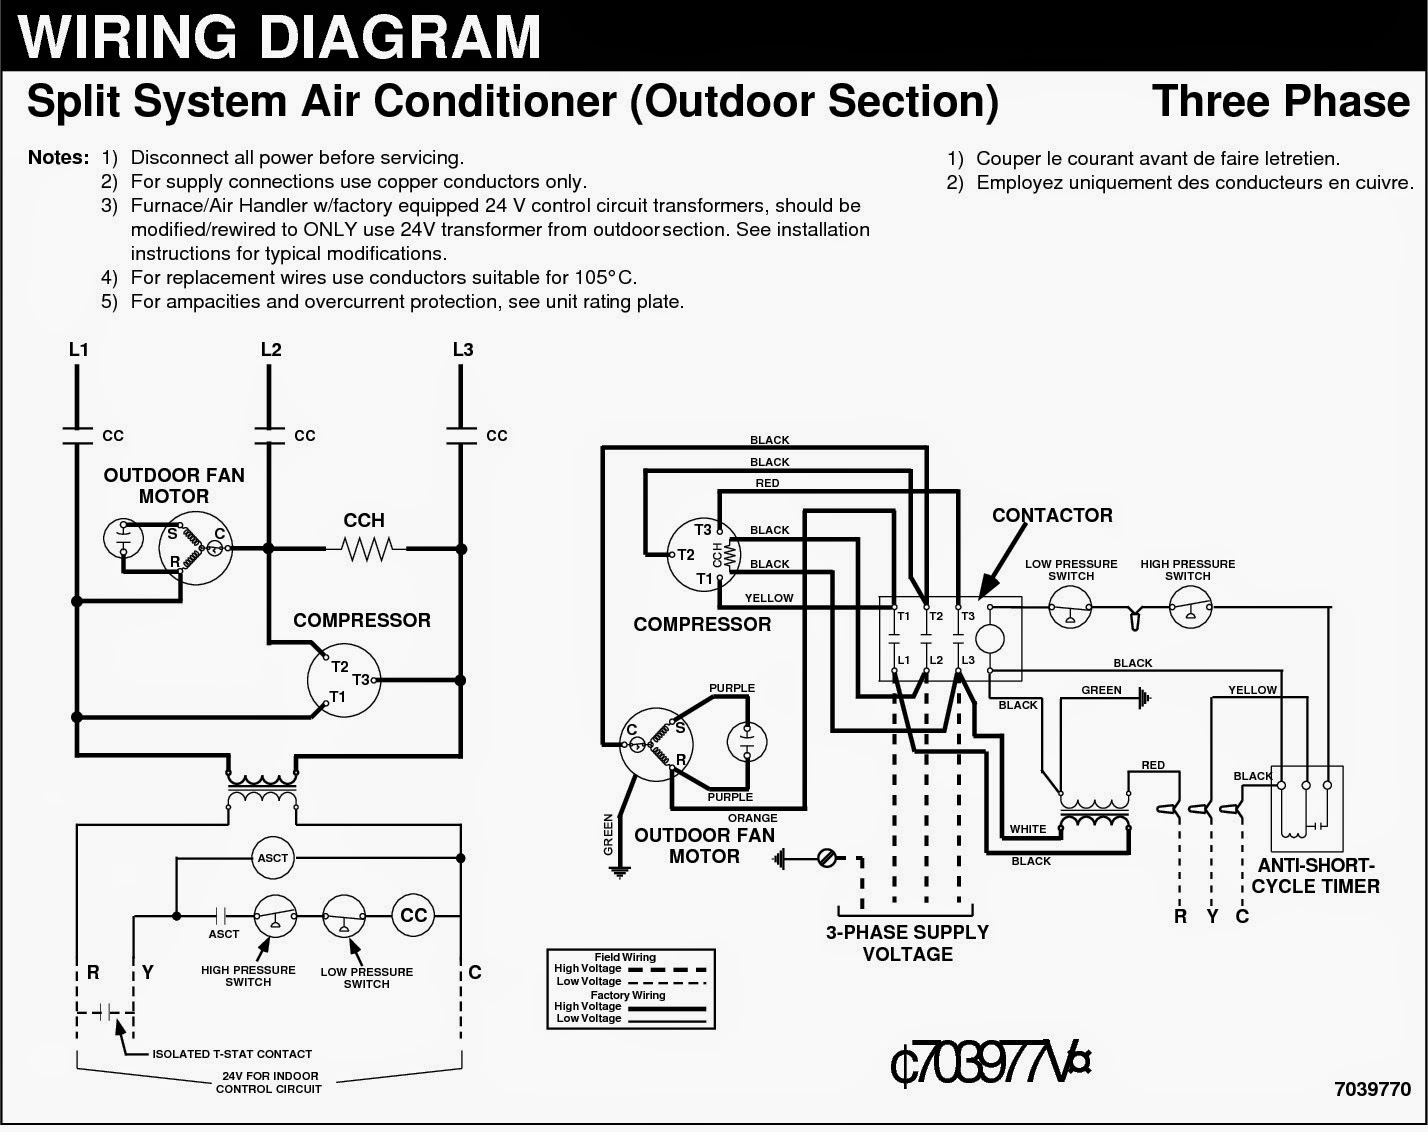 3+phase electrical wiring diagrams for air conditioning systems part two ac wiring diagram at pacquiaovsvargaslive.co